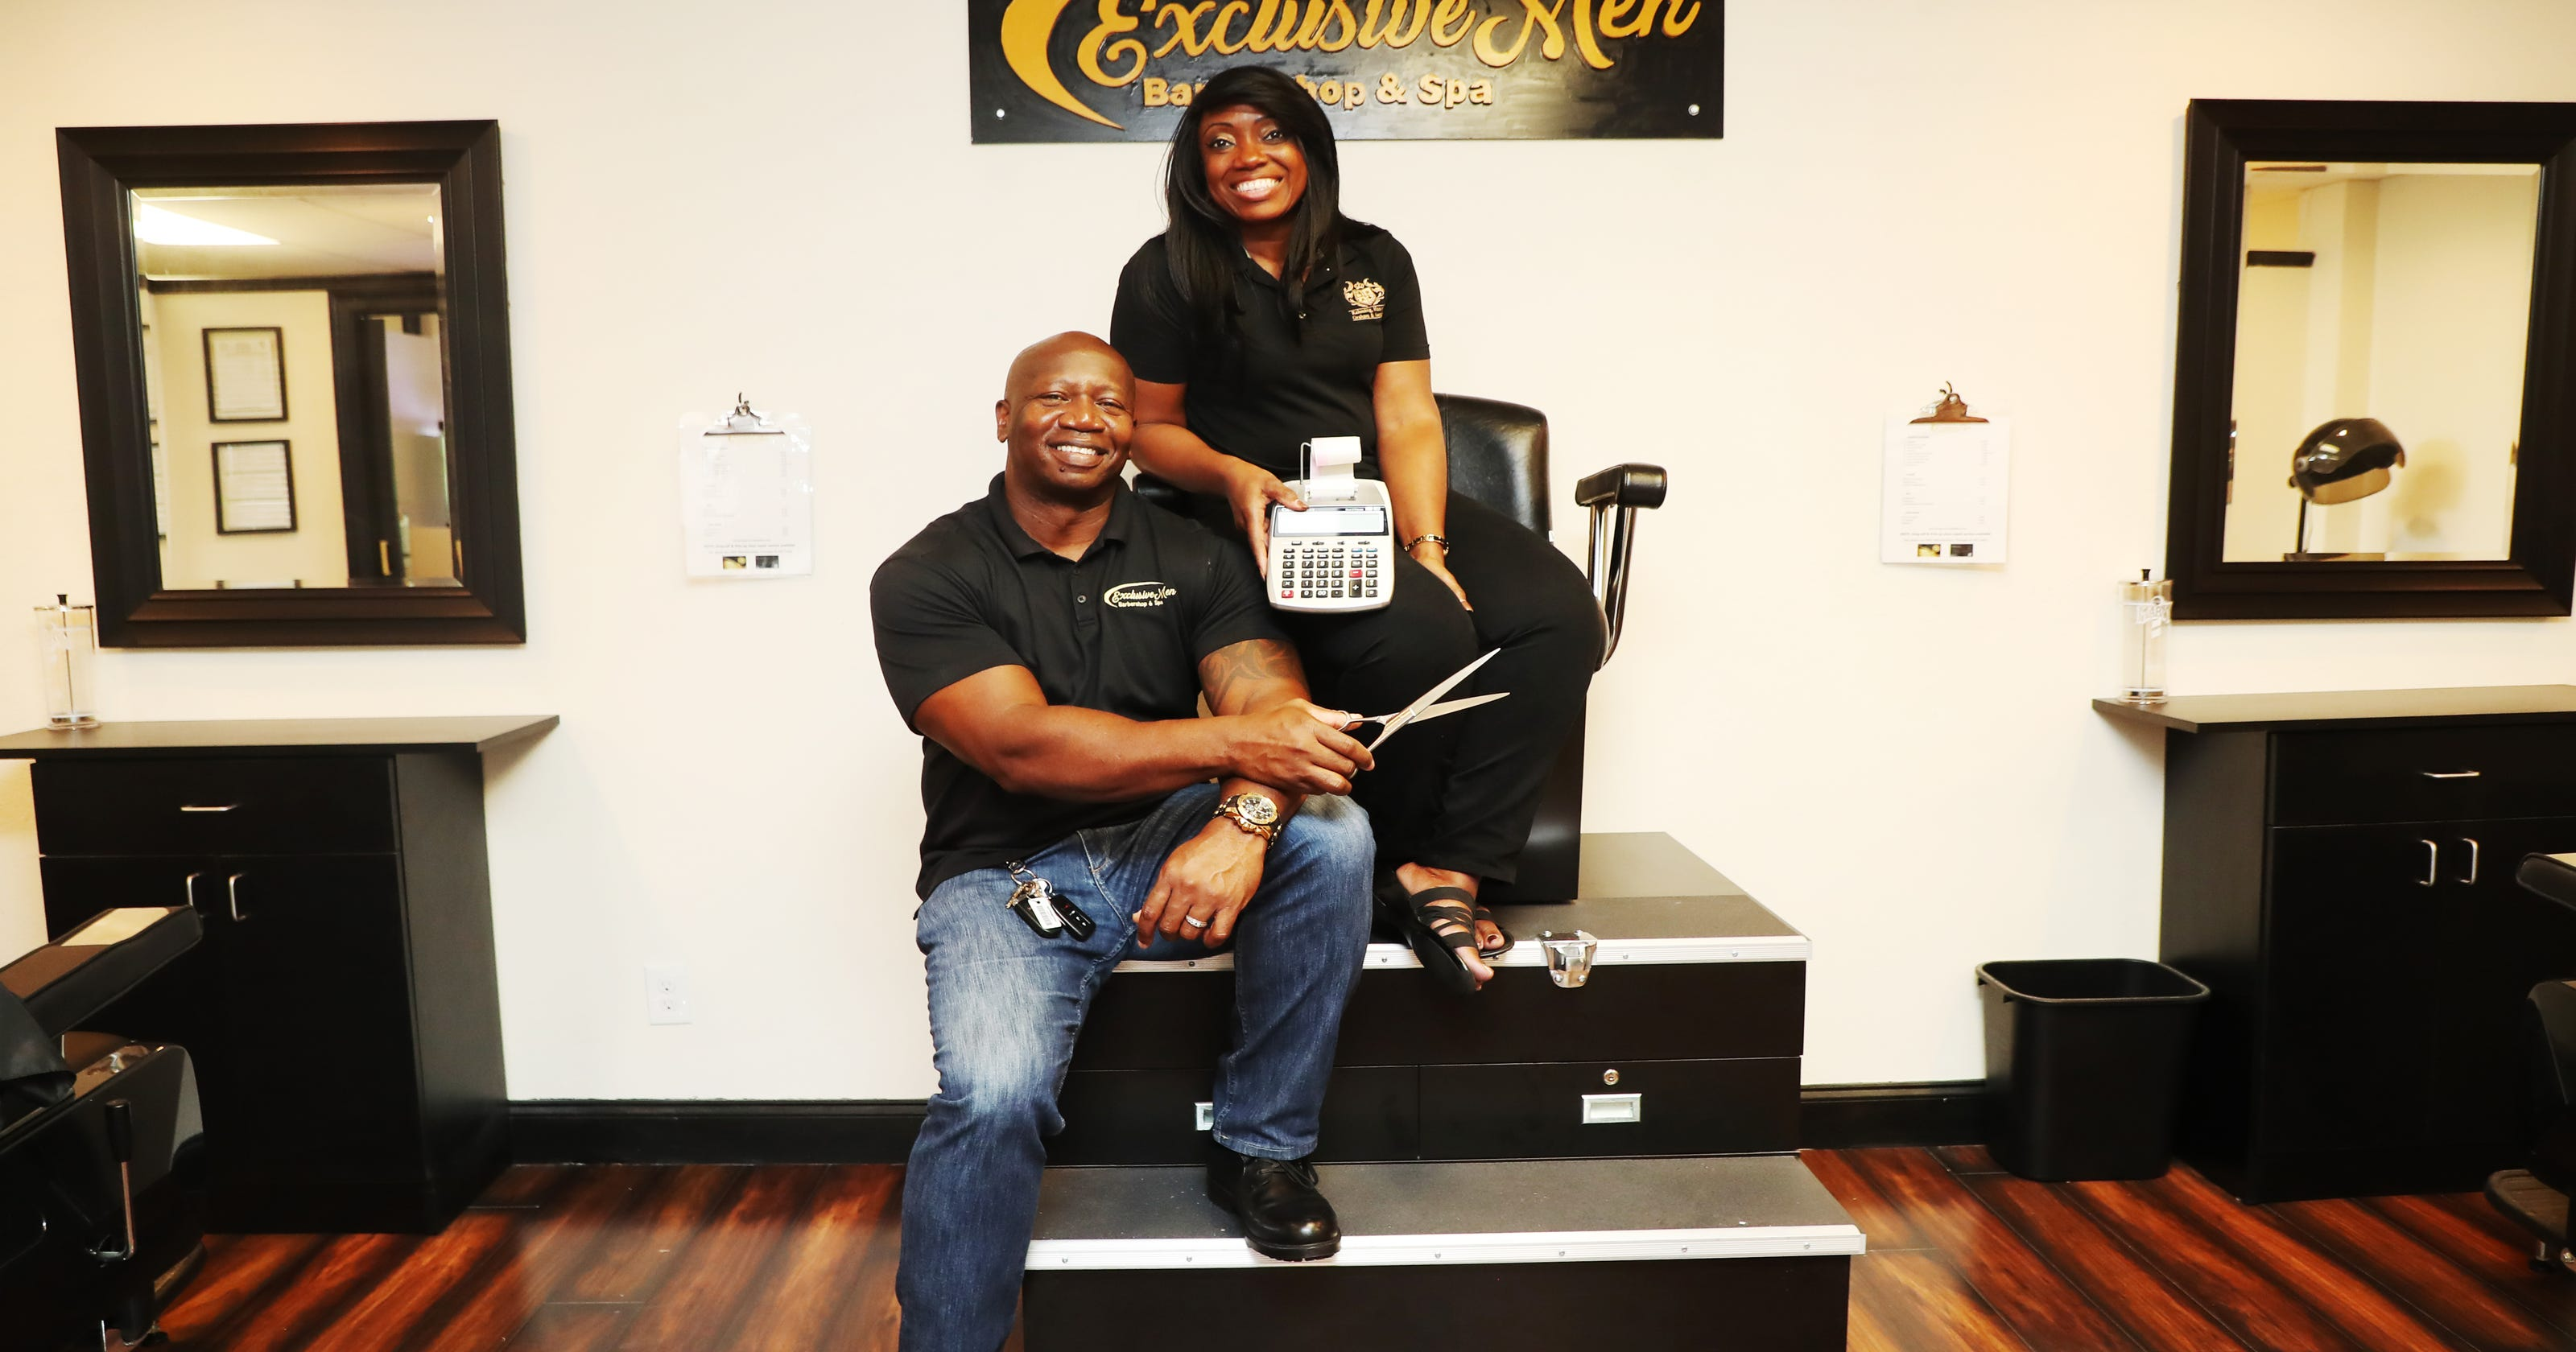 Fort Myers Barbershop Offers One Stop Accounting Haircut And Pedicure